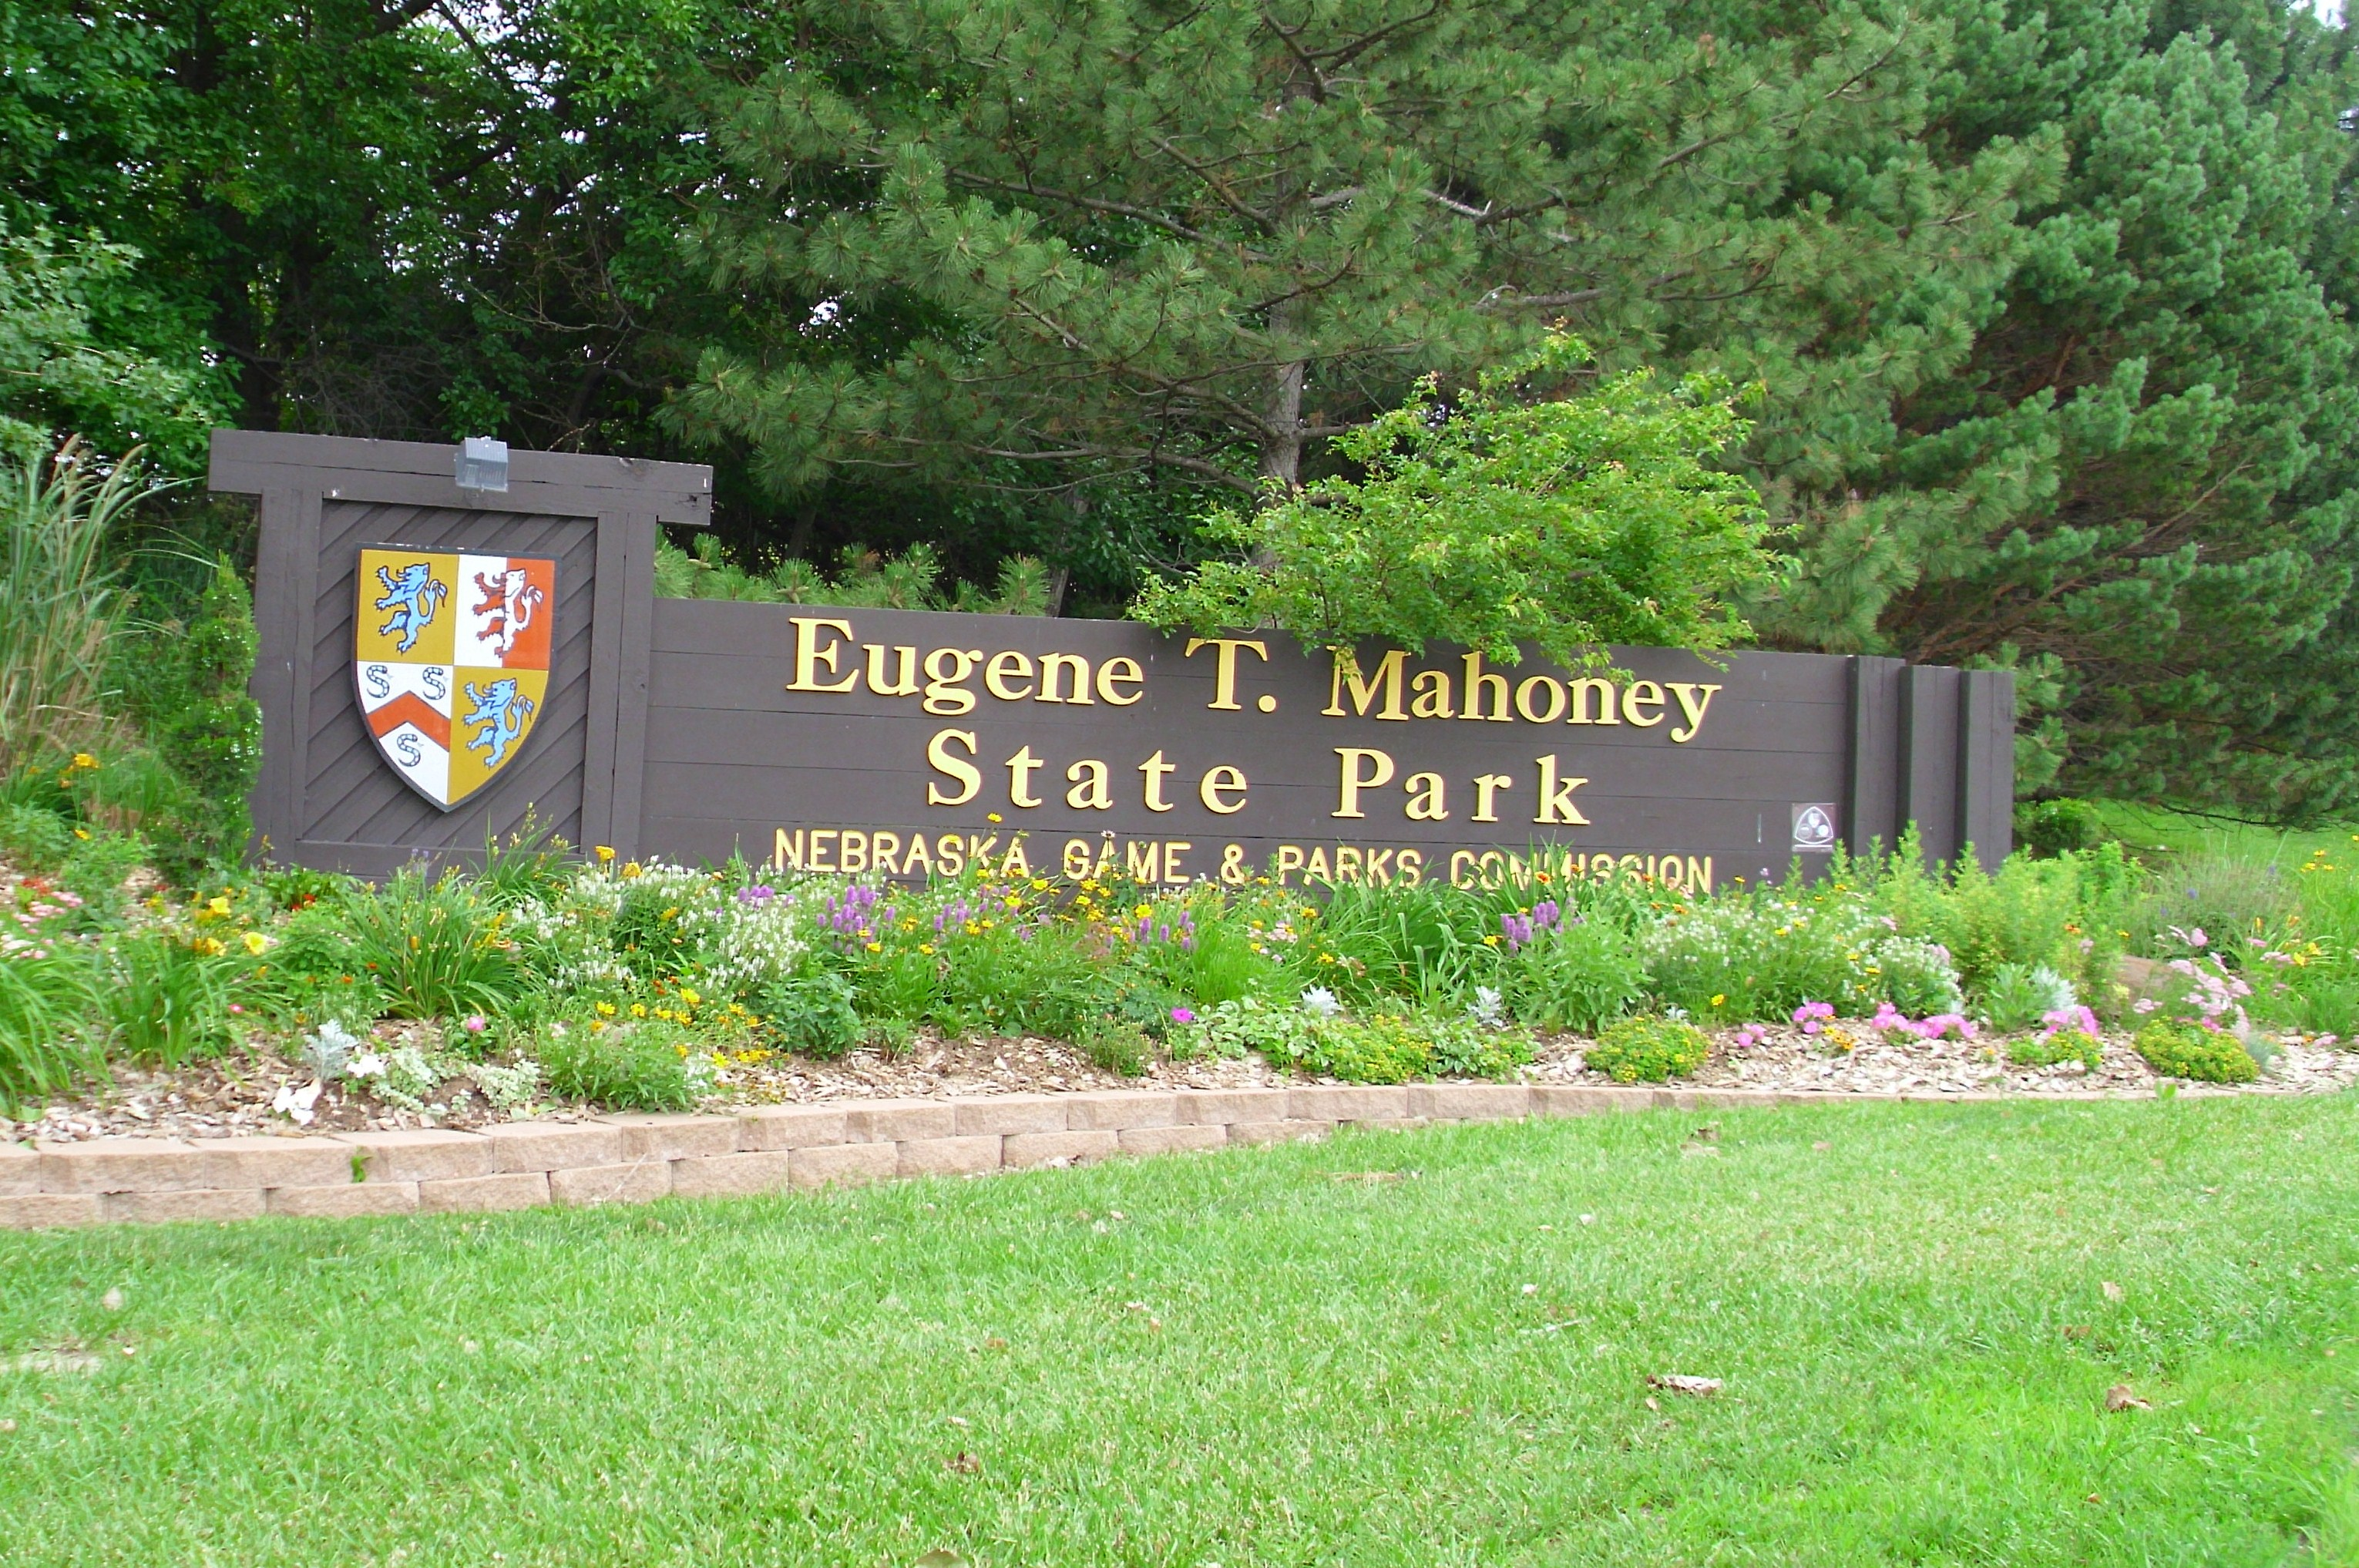 The front sign of the park